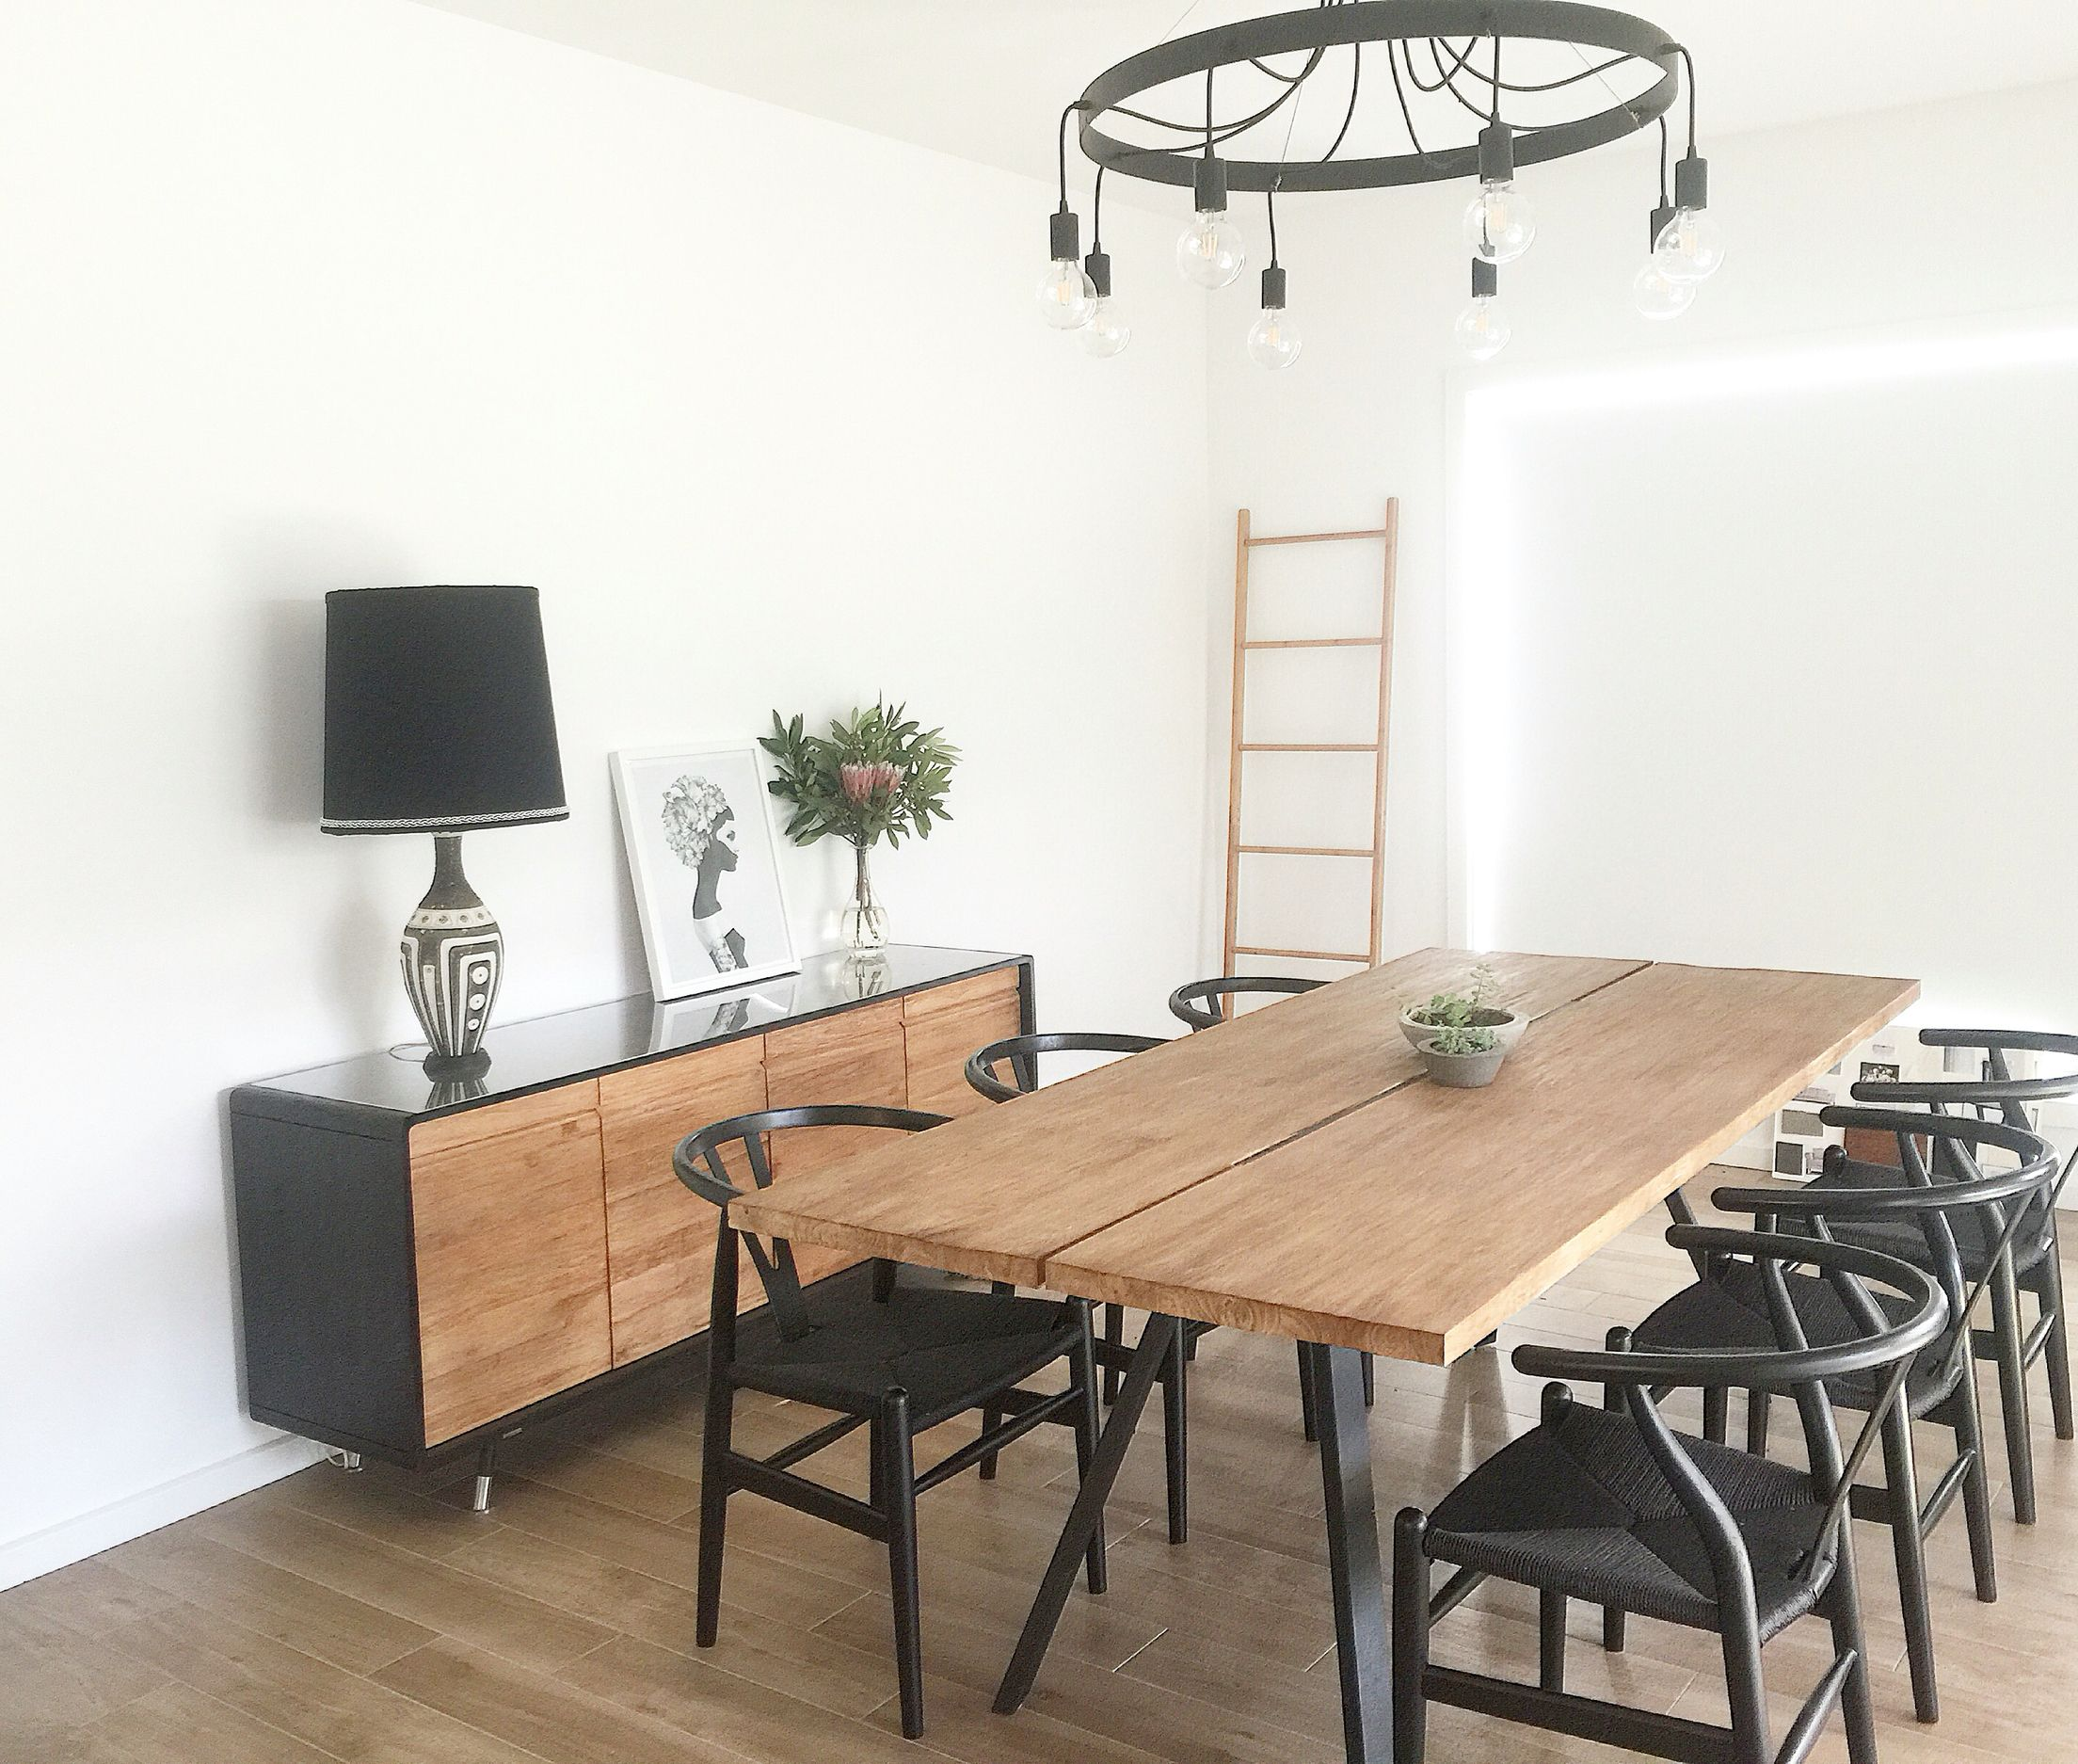 Dining room Inspo with wishbone chairs teak table and buffet